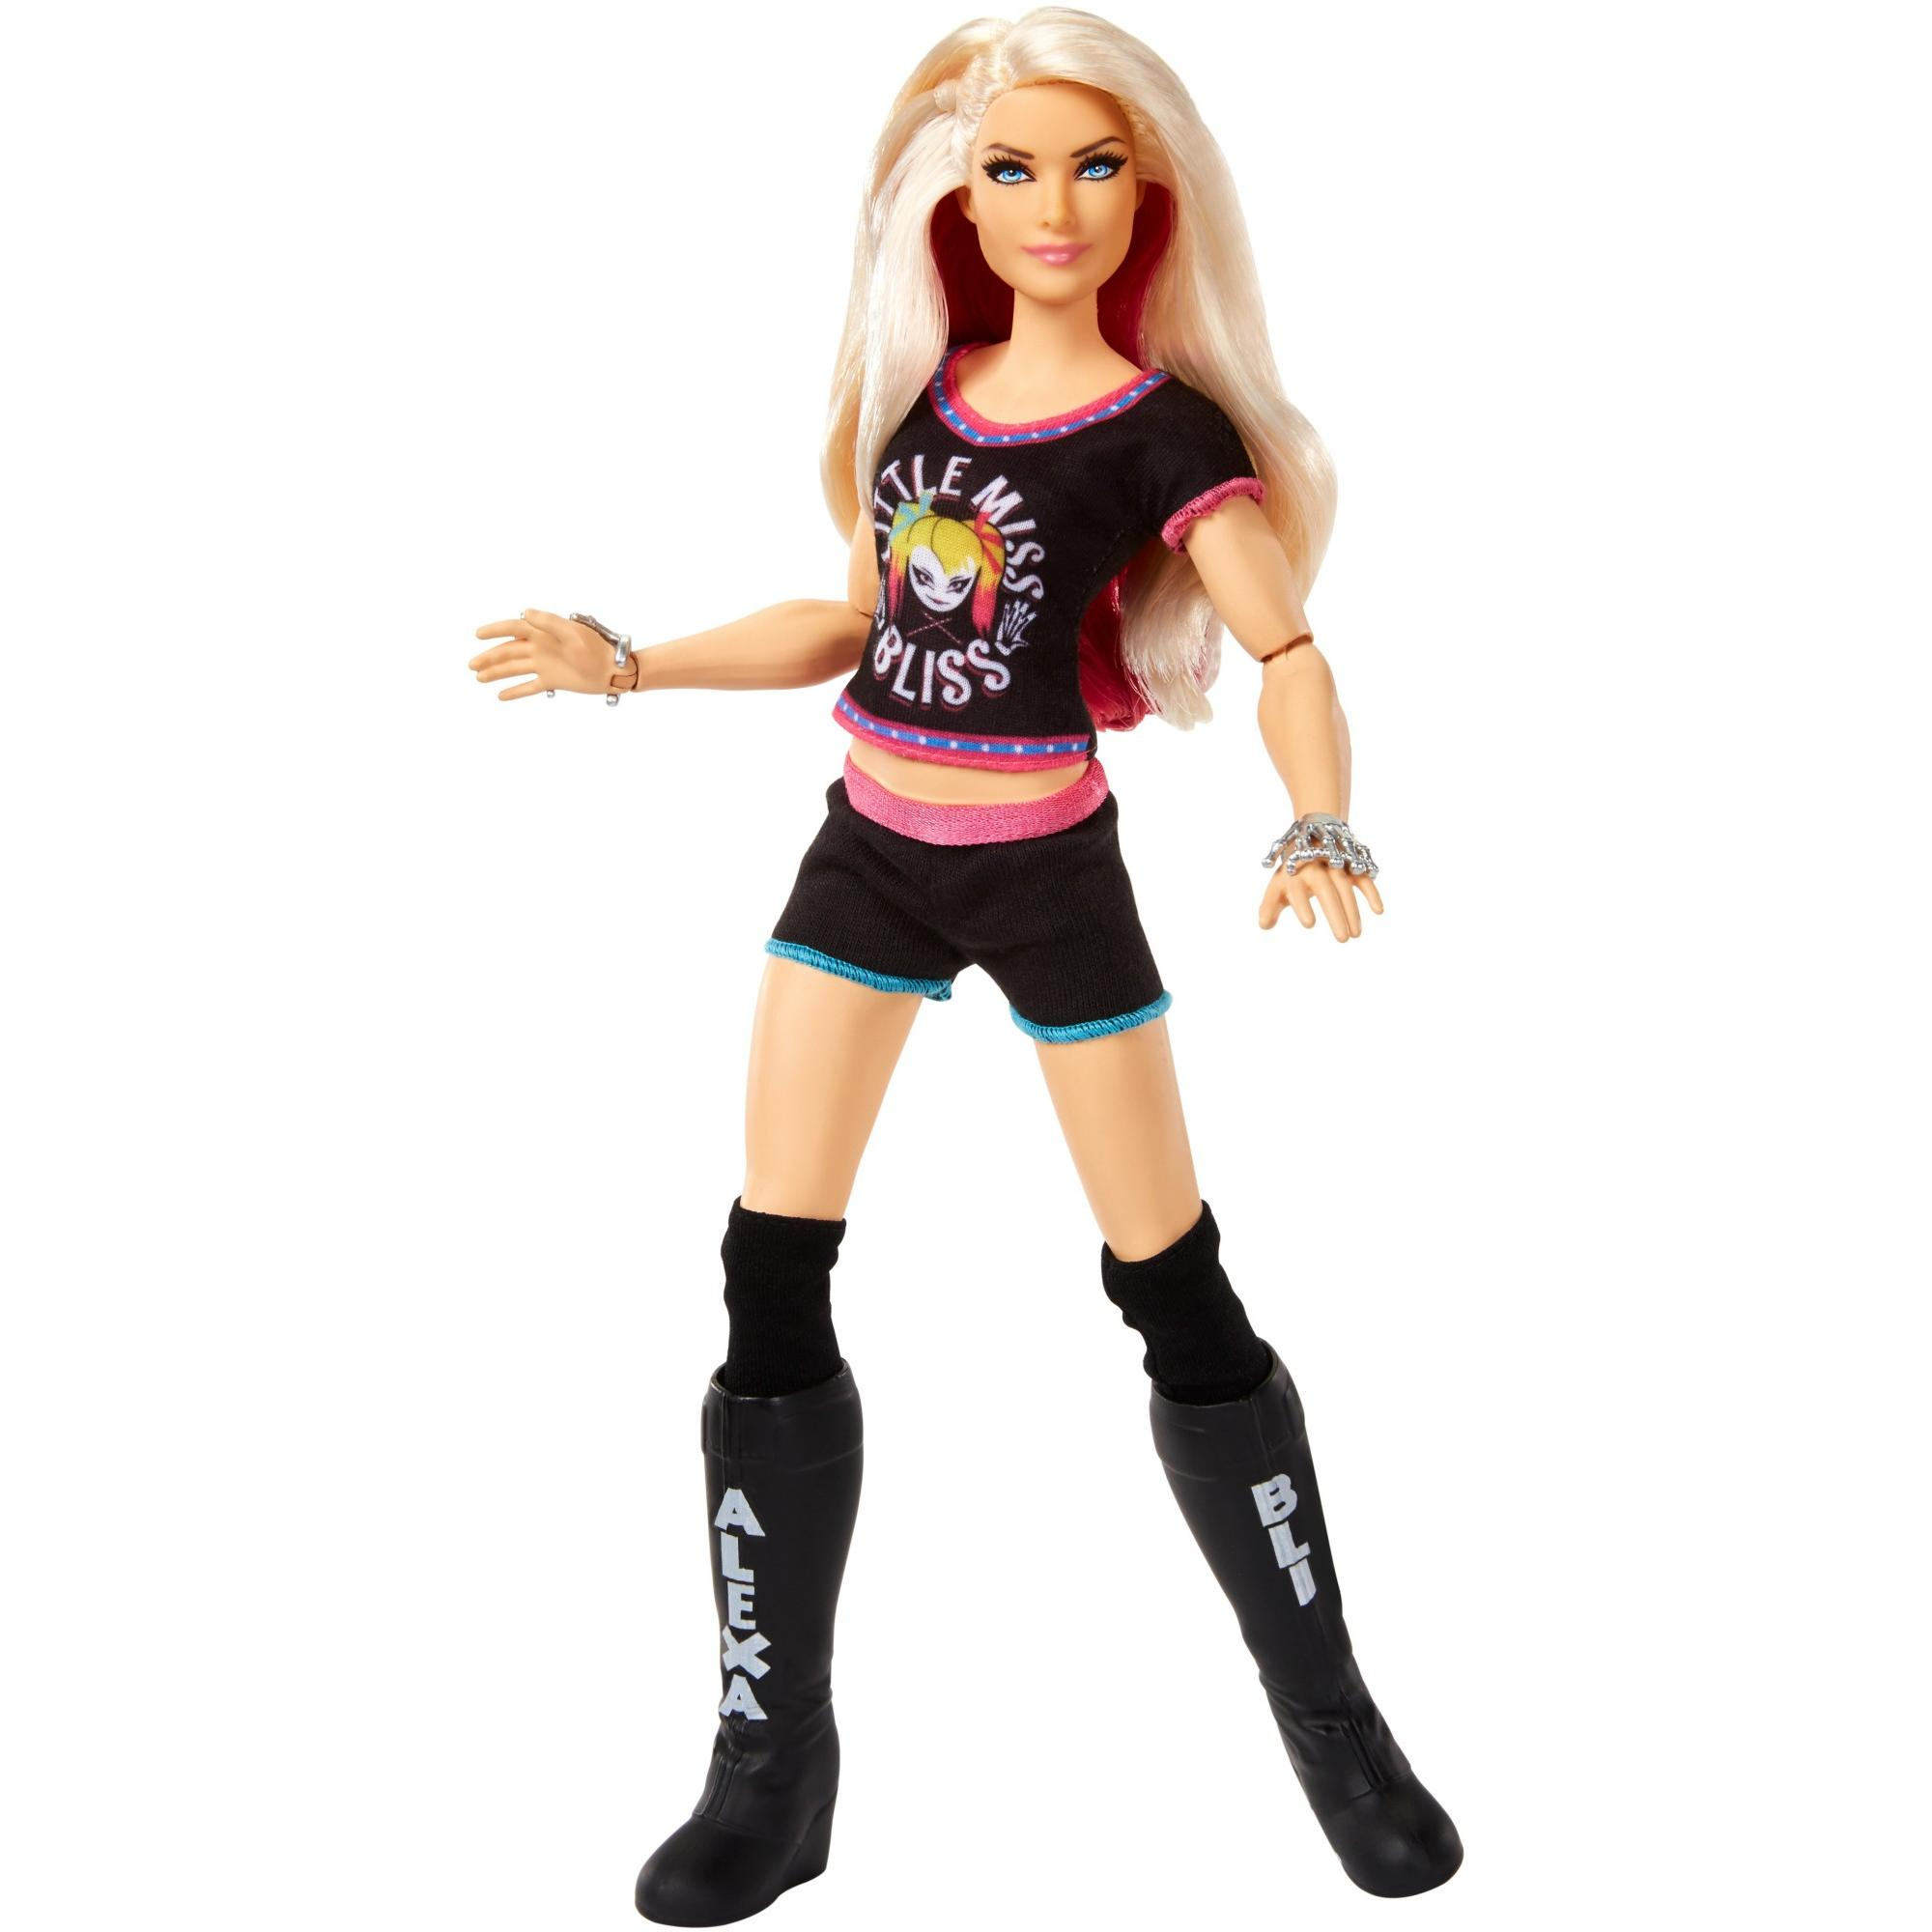 WWE Superstars Alexa Bliss 12-inch Posable Fashion Doll Plus 1 Outfit